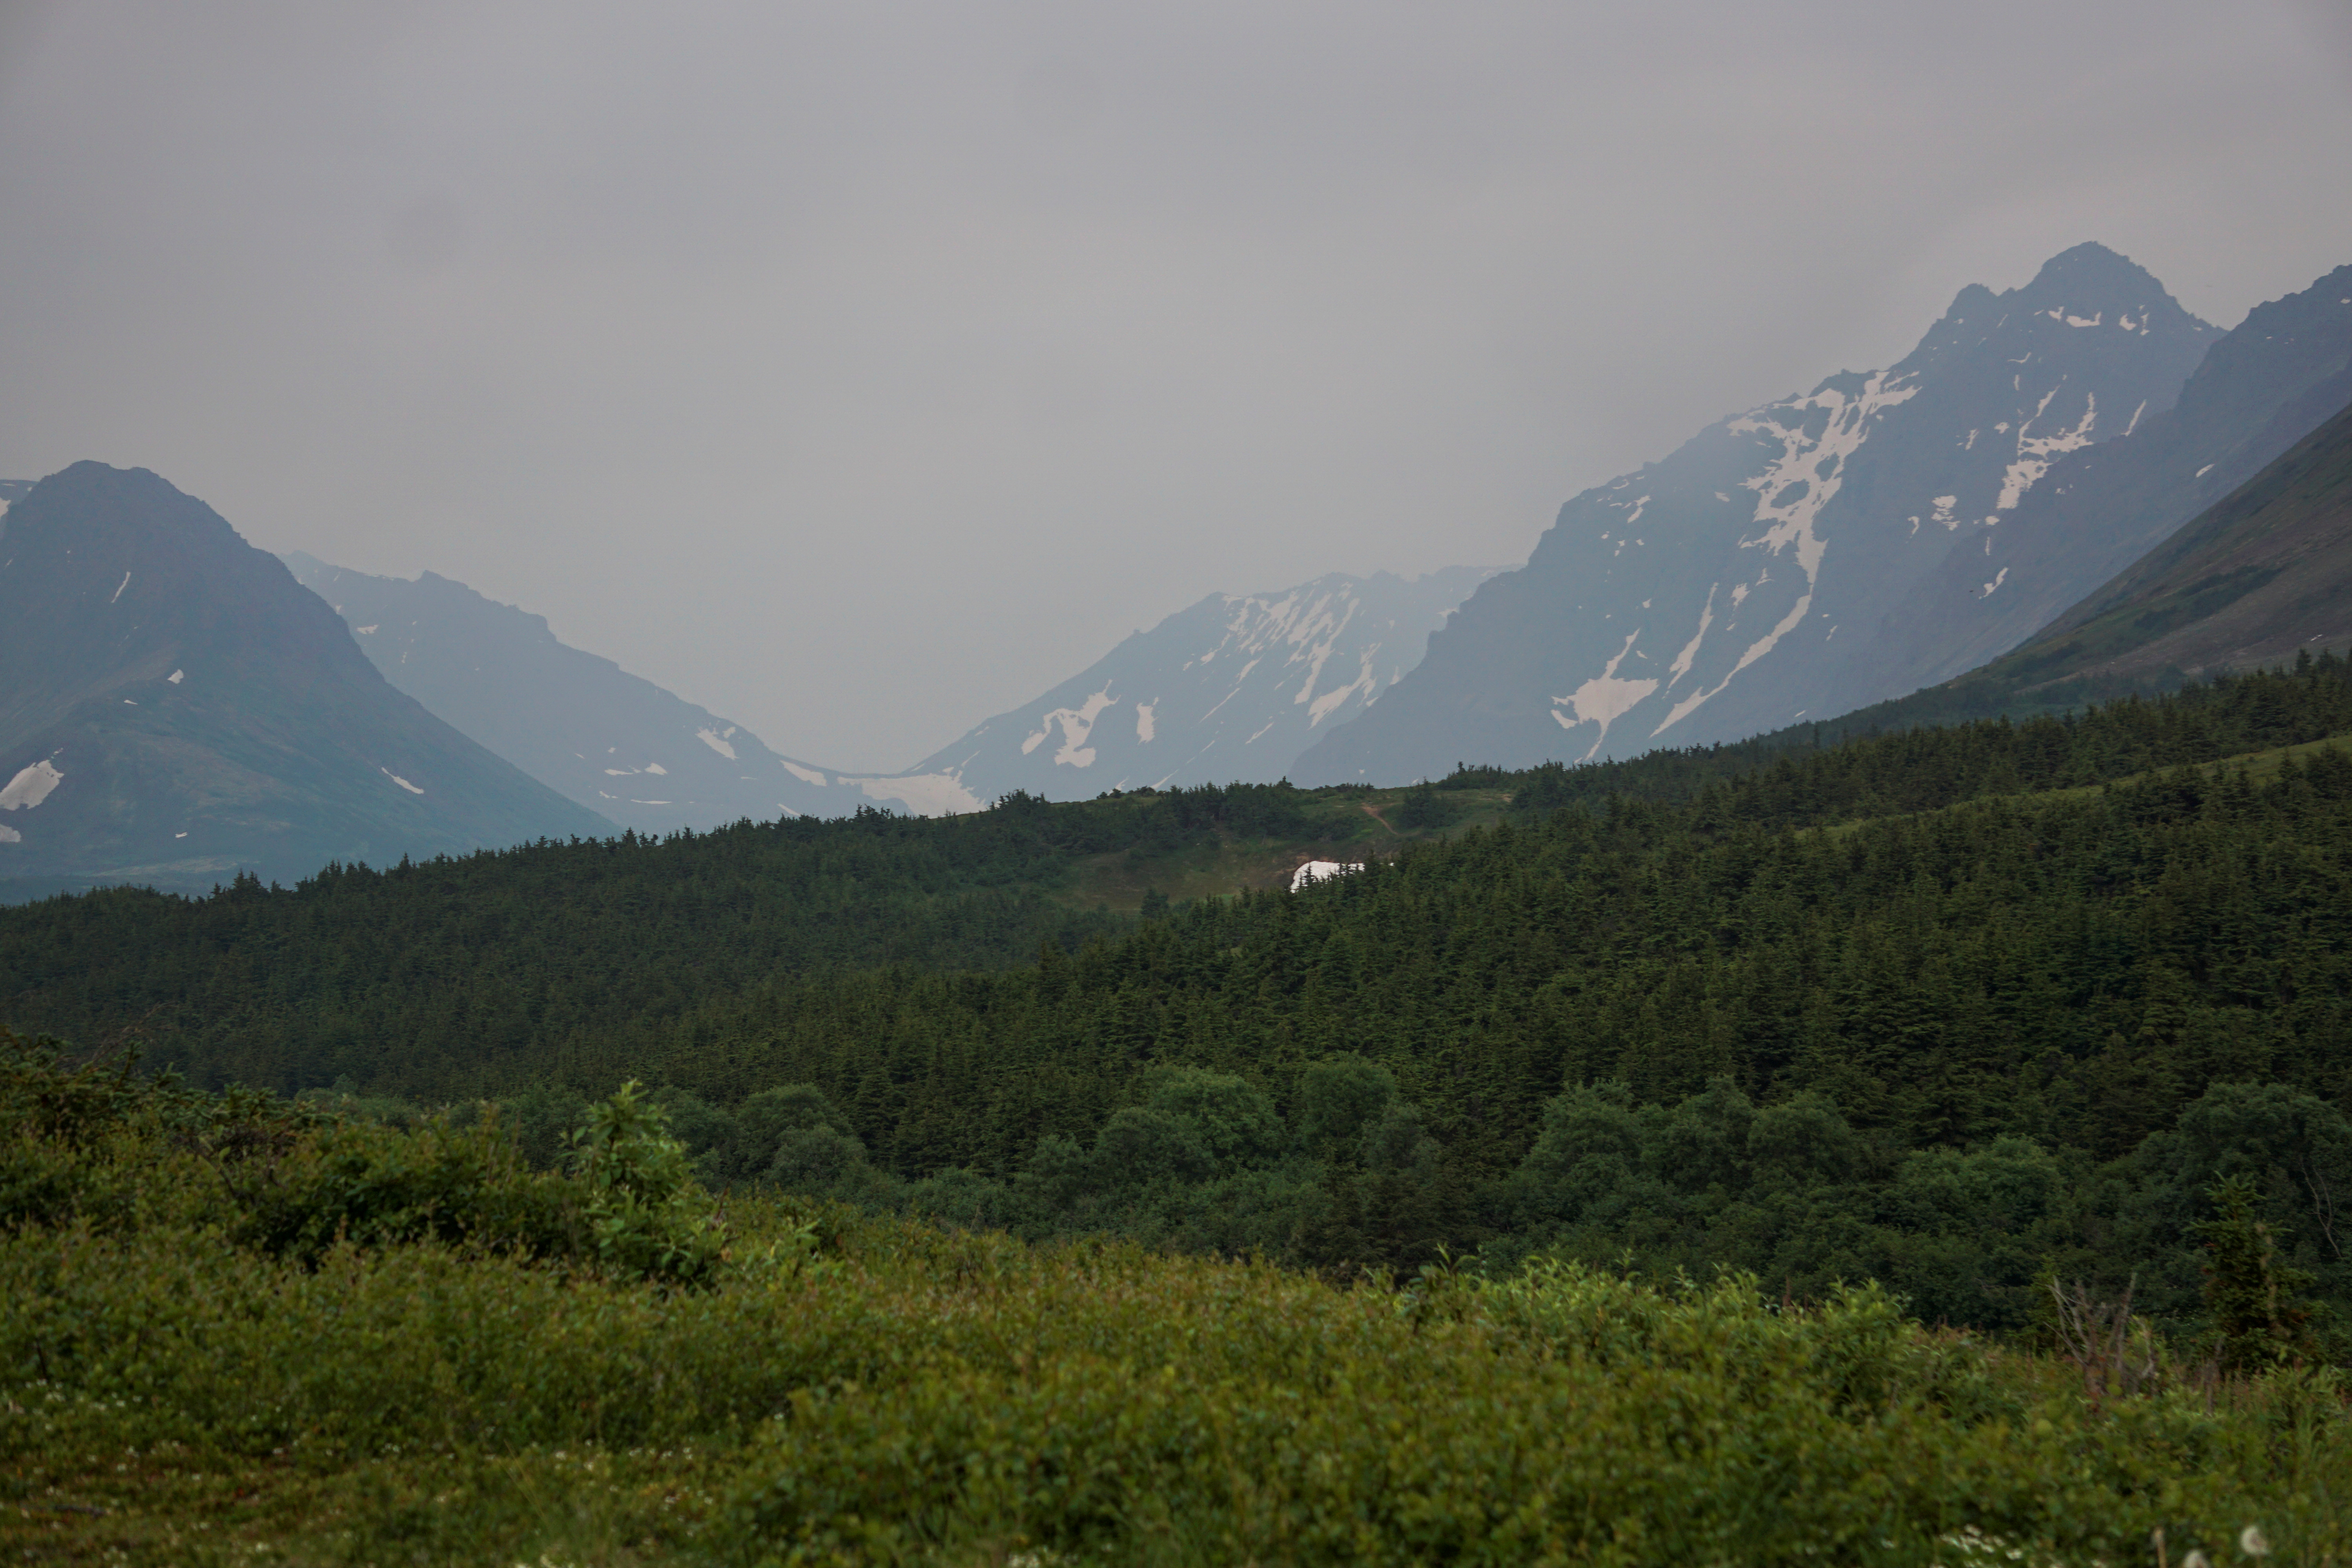 A general view of the mountain valley obscured by smoke taken from the Glen Alps trailhead of Chugach State Park in Anchorage, Alaska, U.S., June 29, 2019. Picture taken June 29, 2019. REUTERS/Yereth Rosen